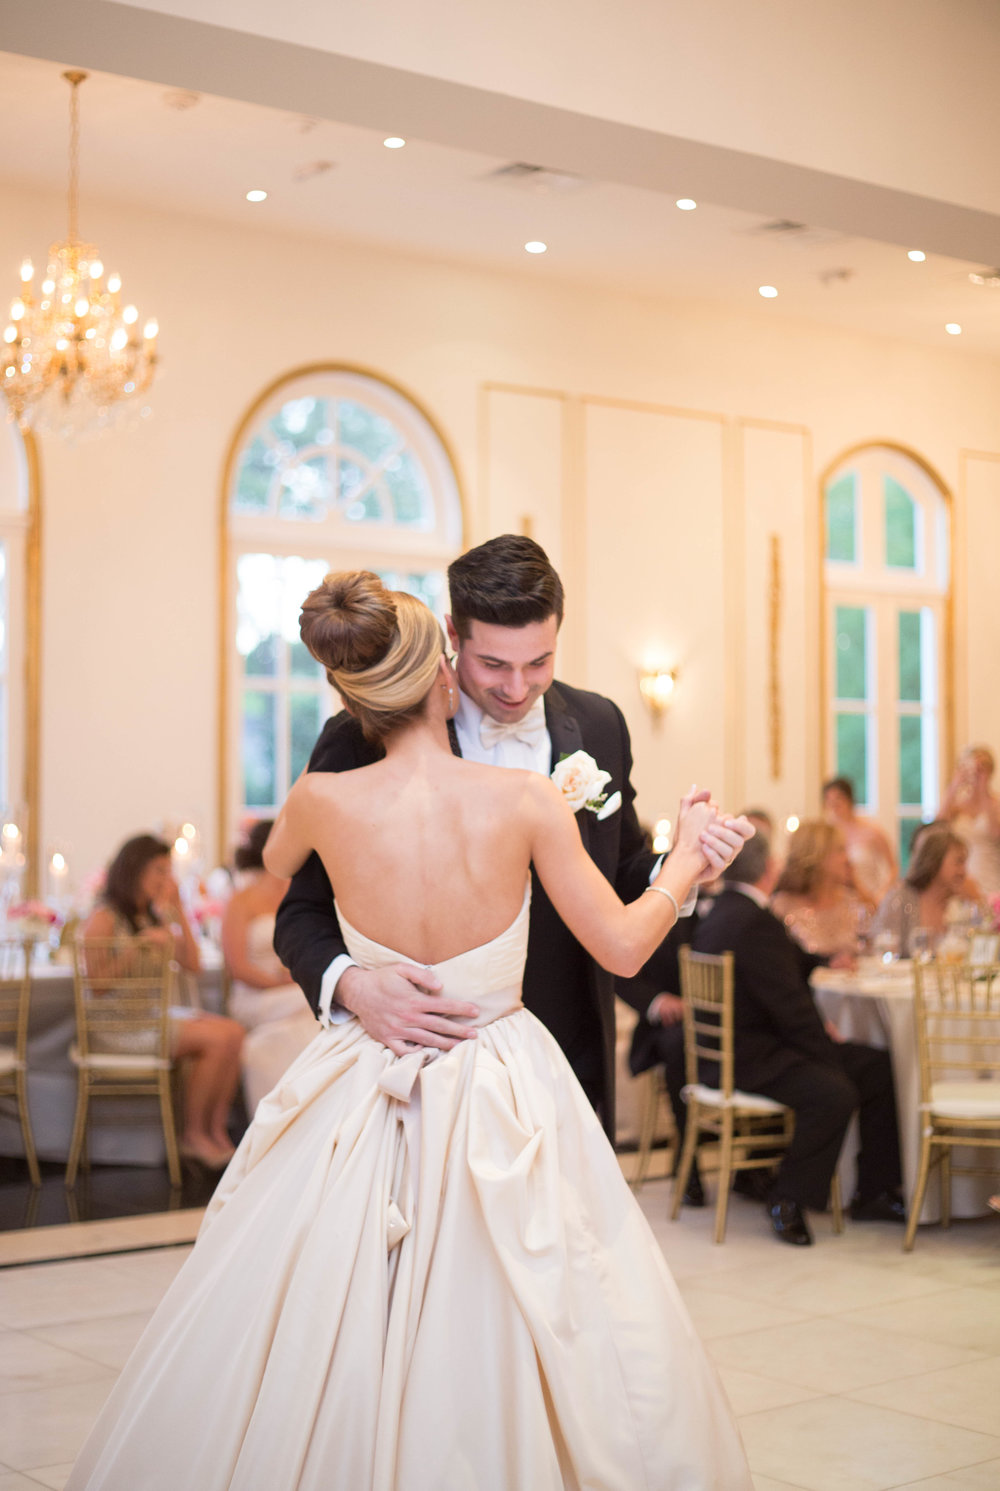 First dance | by Vashti Co.